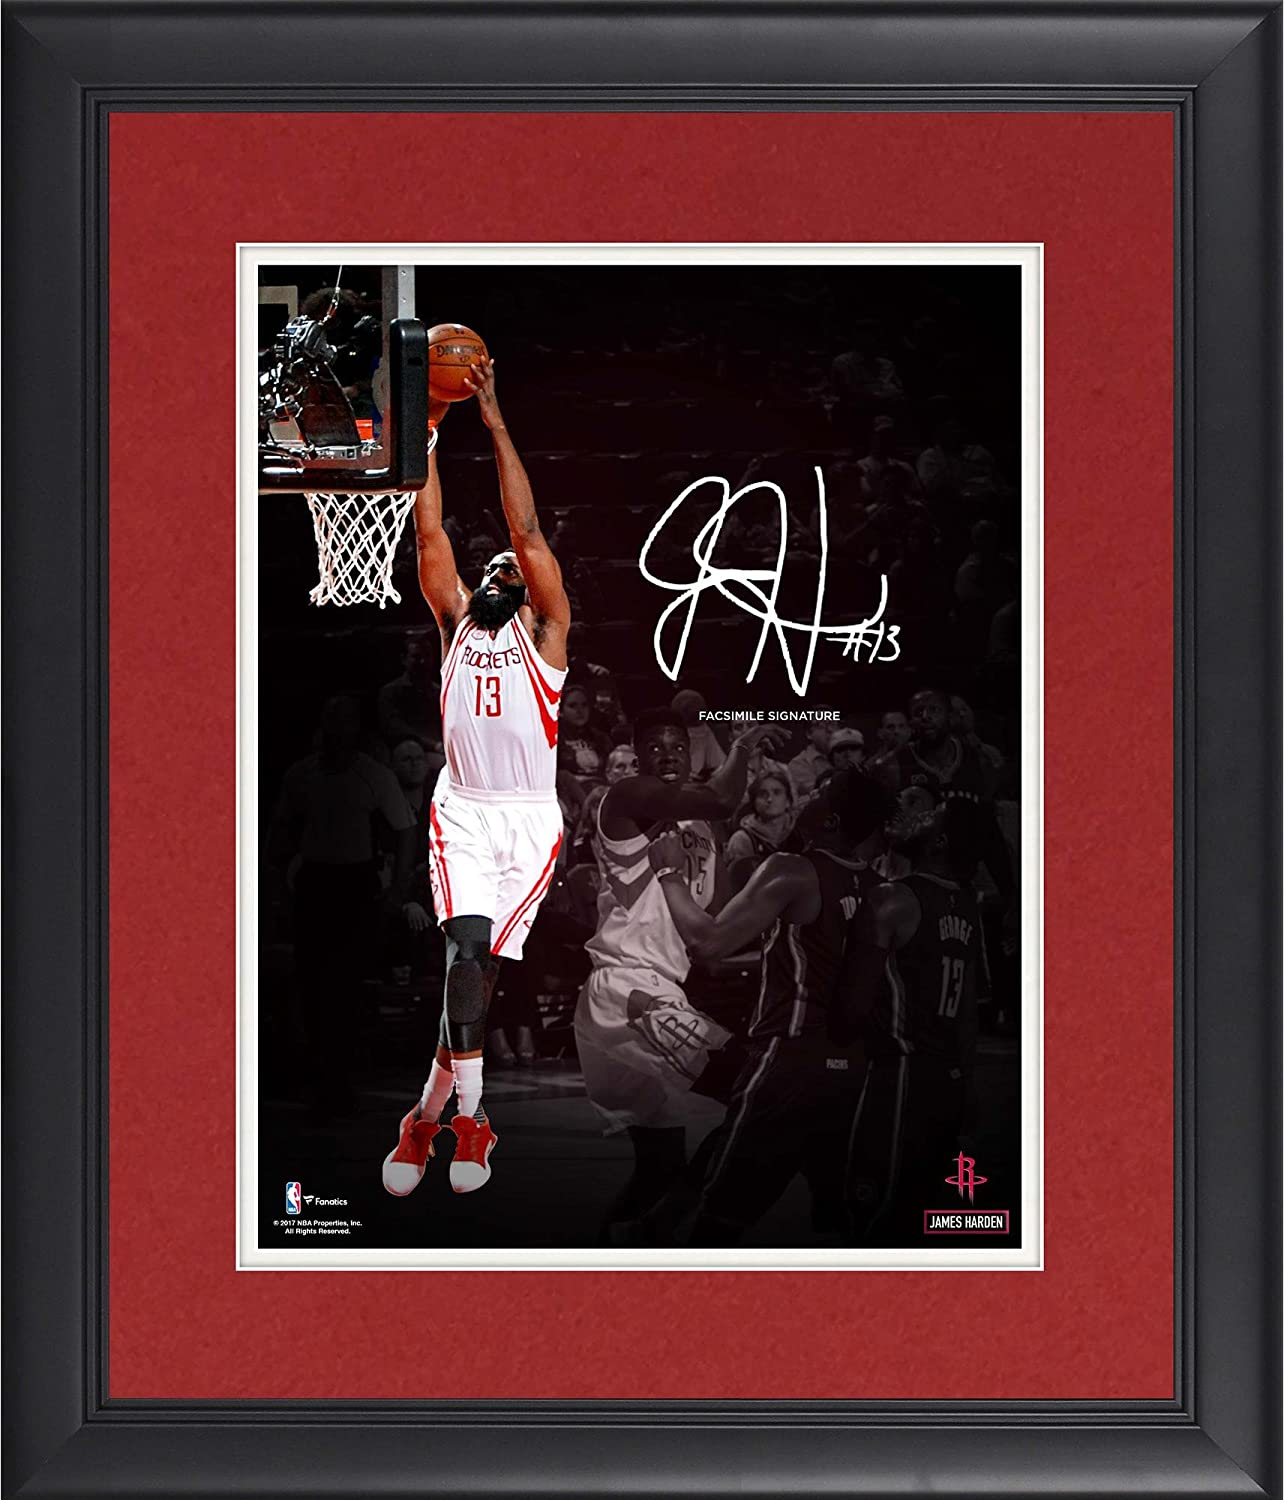 "James Harden Houston Rockets Framed 11"" x 14"" Spotlight Photograph - Facsimile Signature - NBA Player Plaques and Collages at Amazon's Sports Collectibles Store"